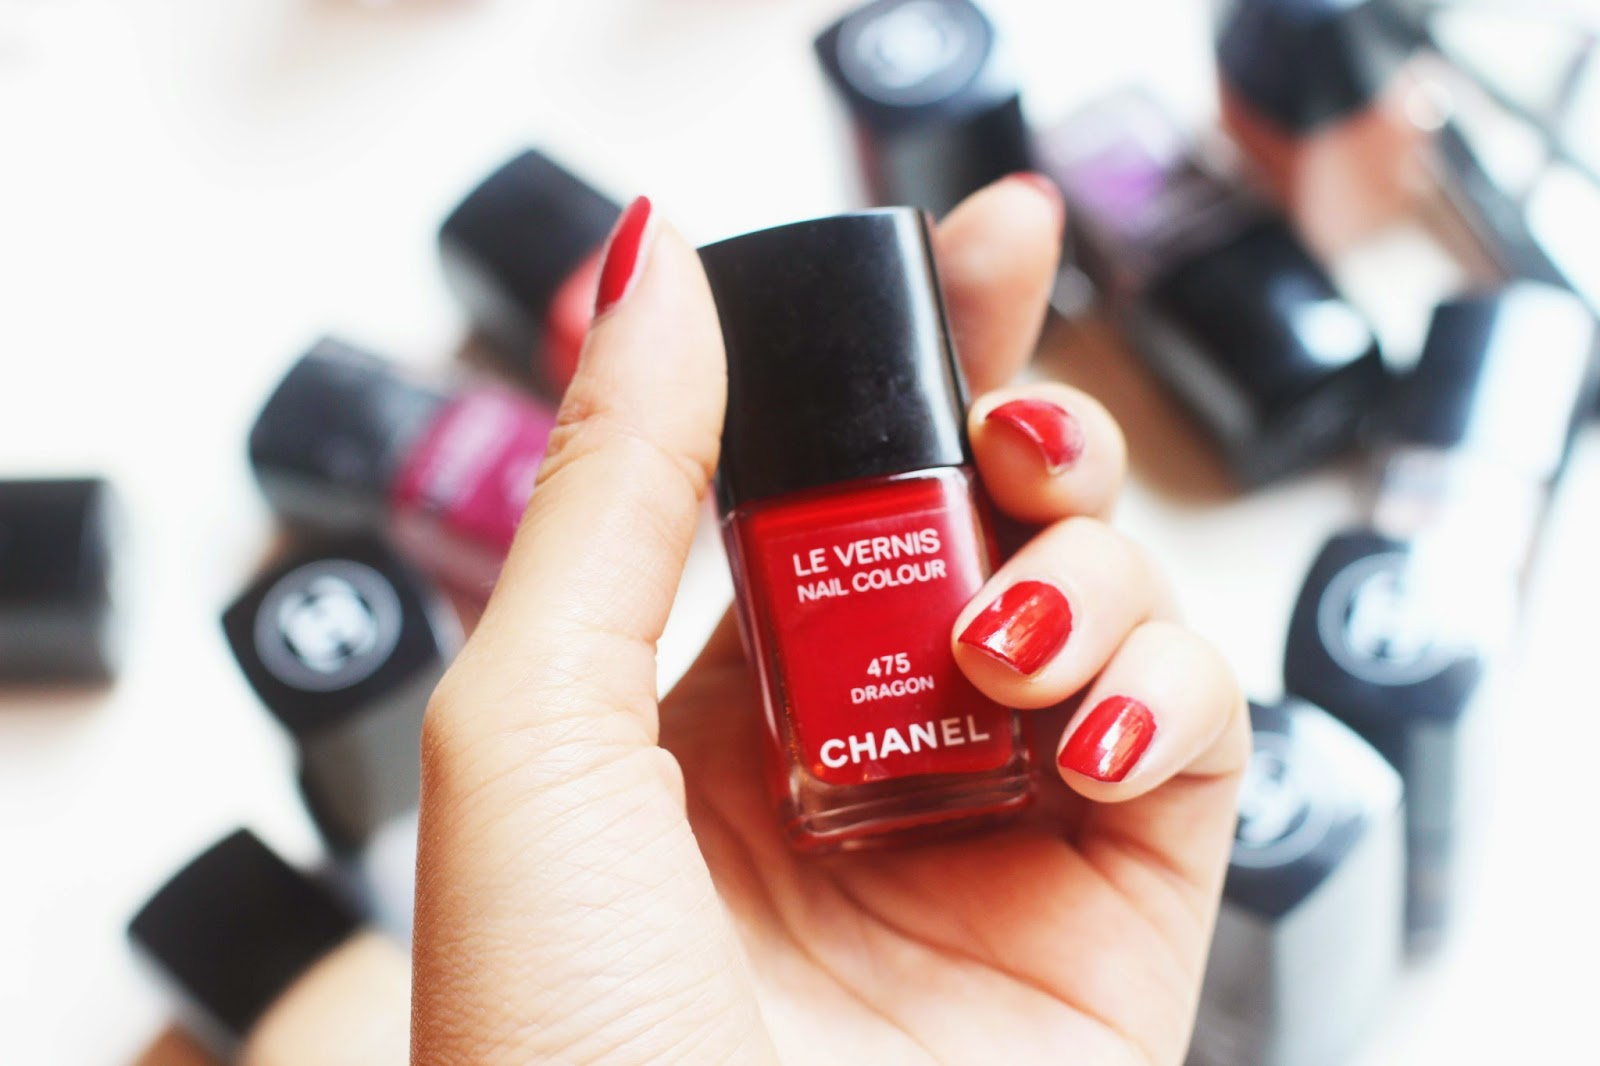 Chanel Classic Red Nail Polish in 475 Dragon